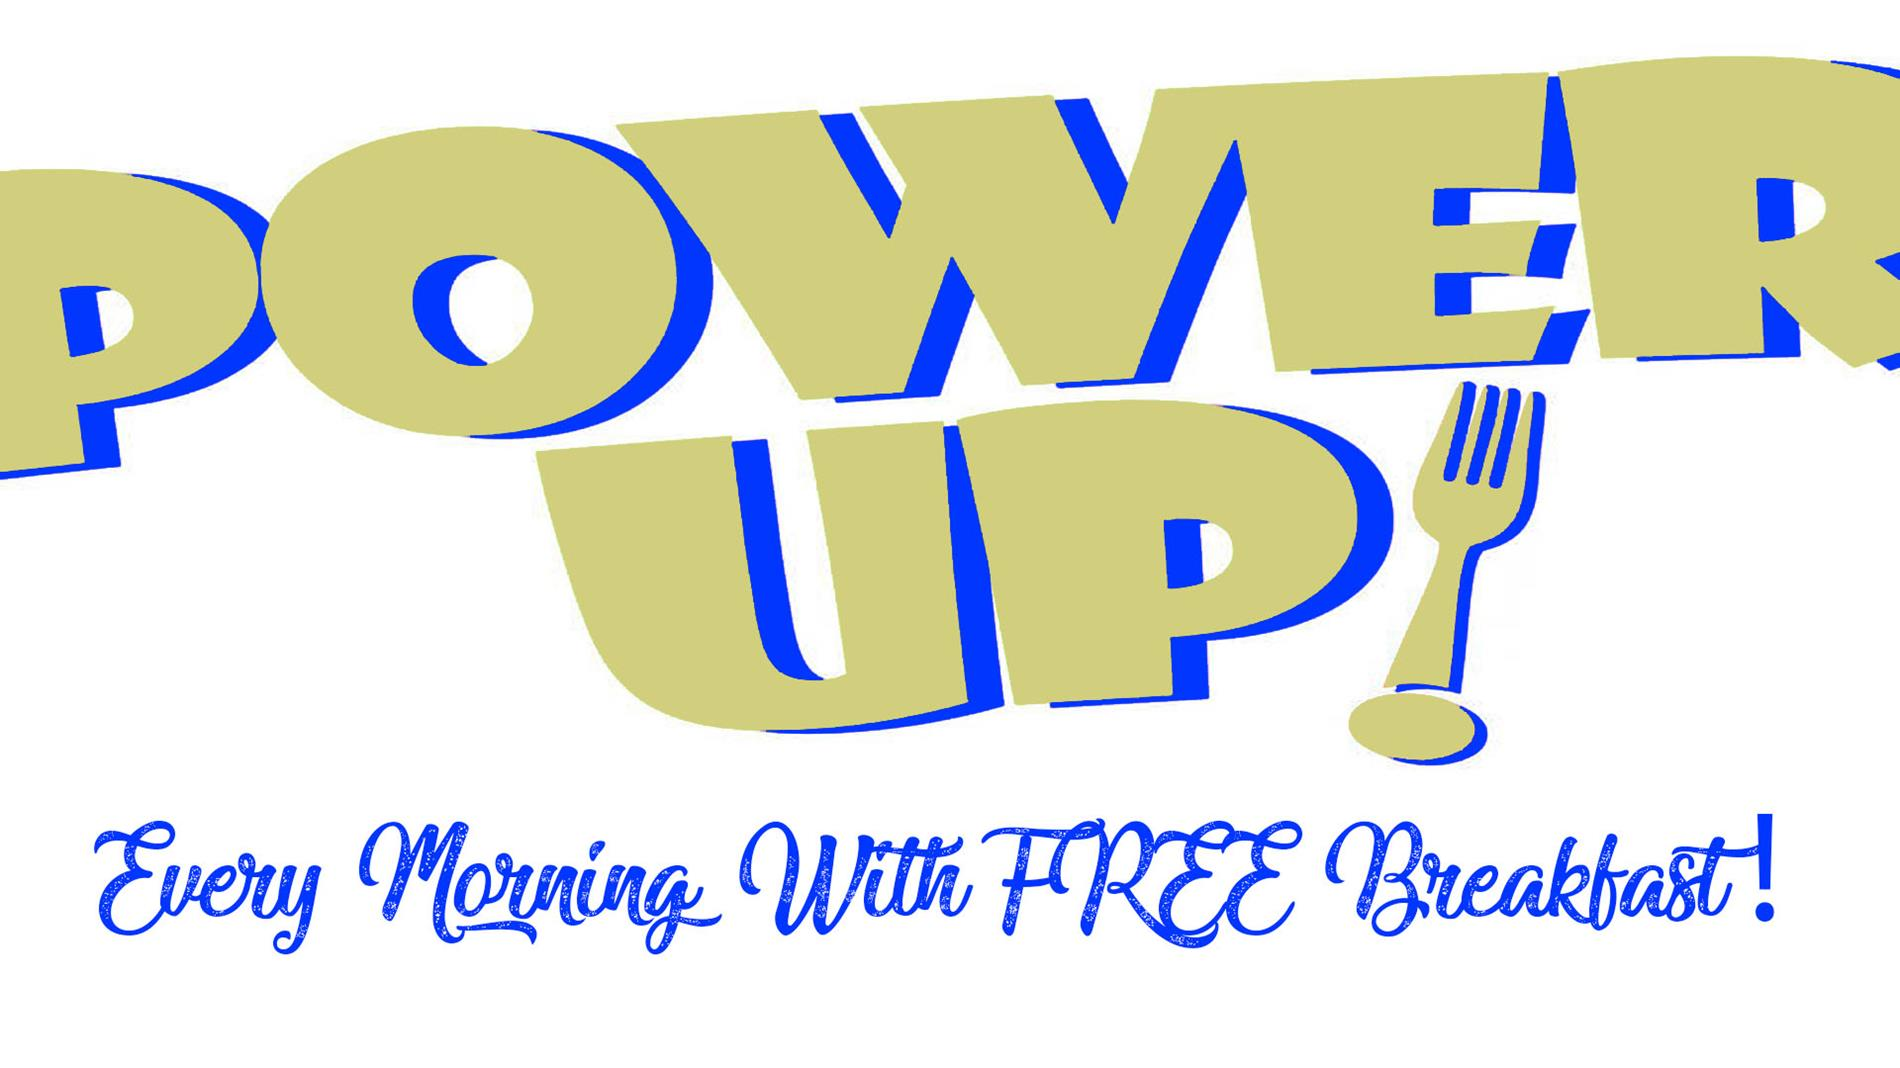 Power up every morning with free Breakfast! Logo